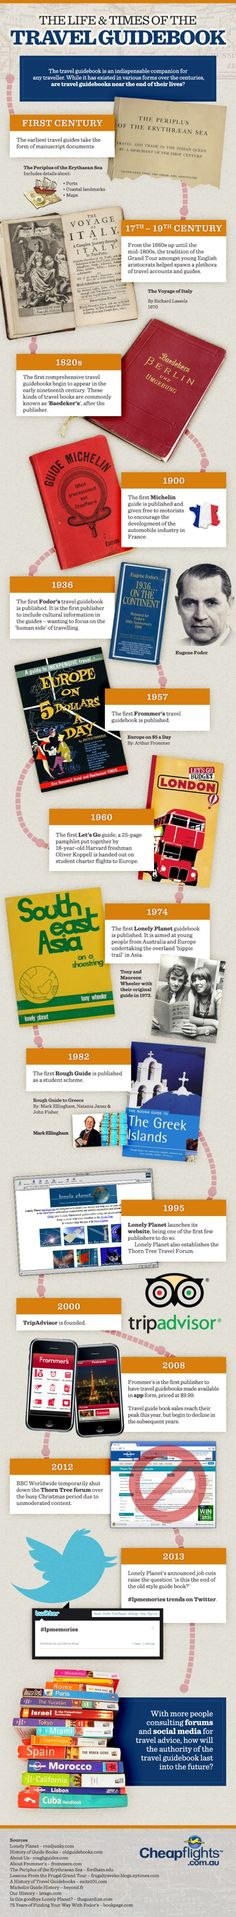 From Periplus to social media – a potted history of the travel guidebook #infographic